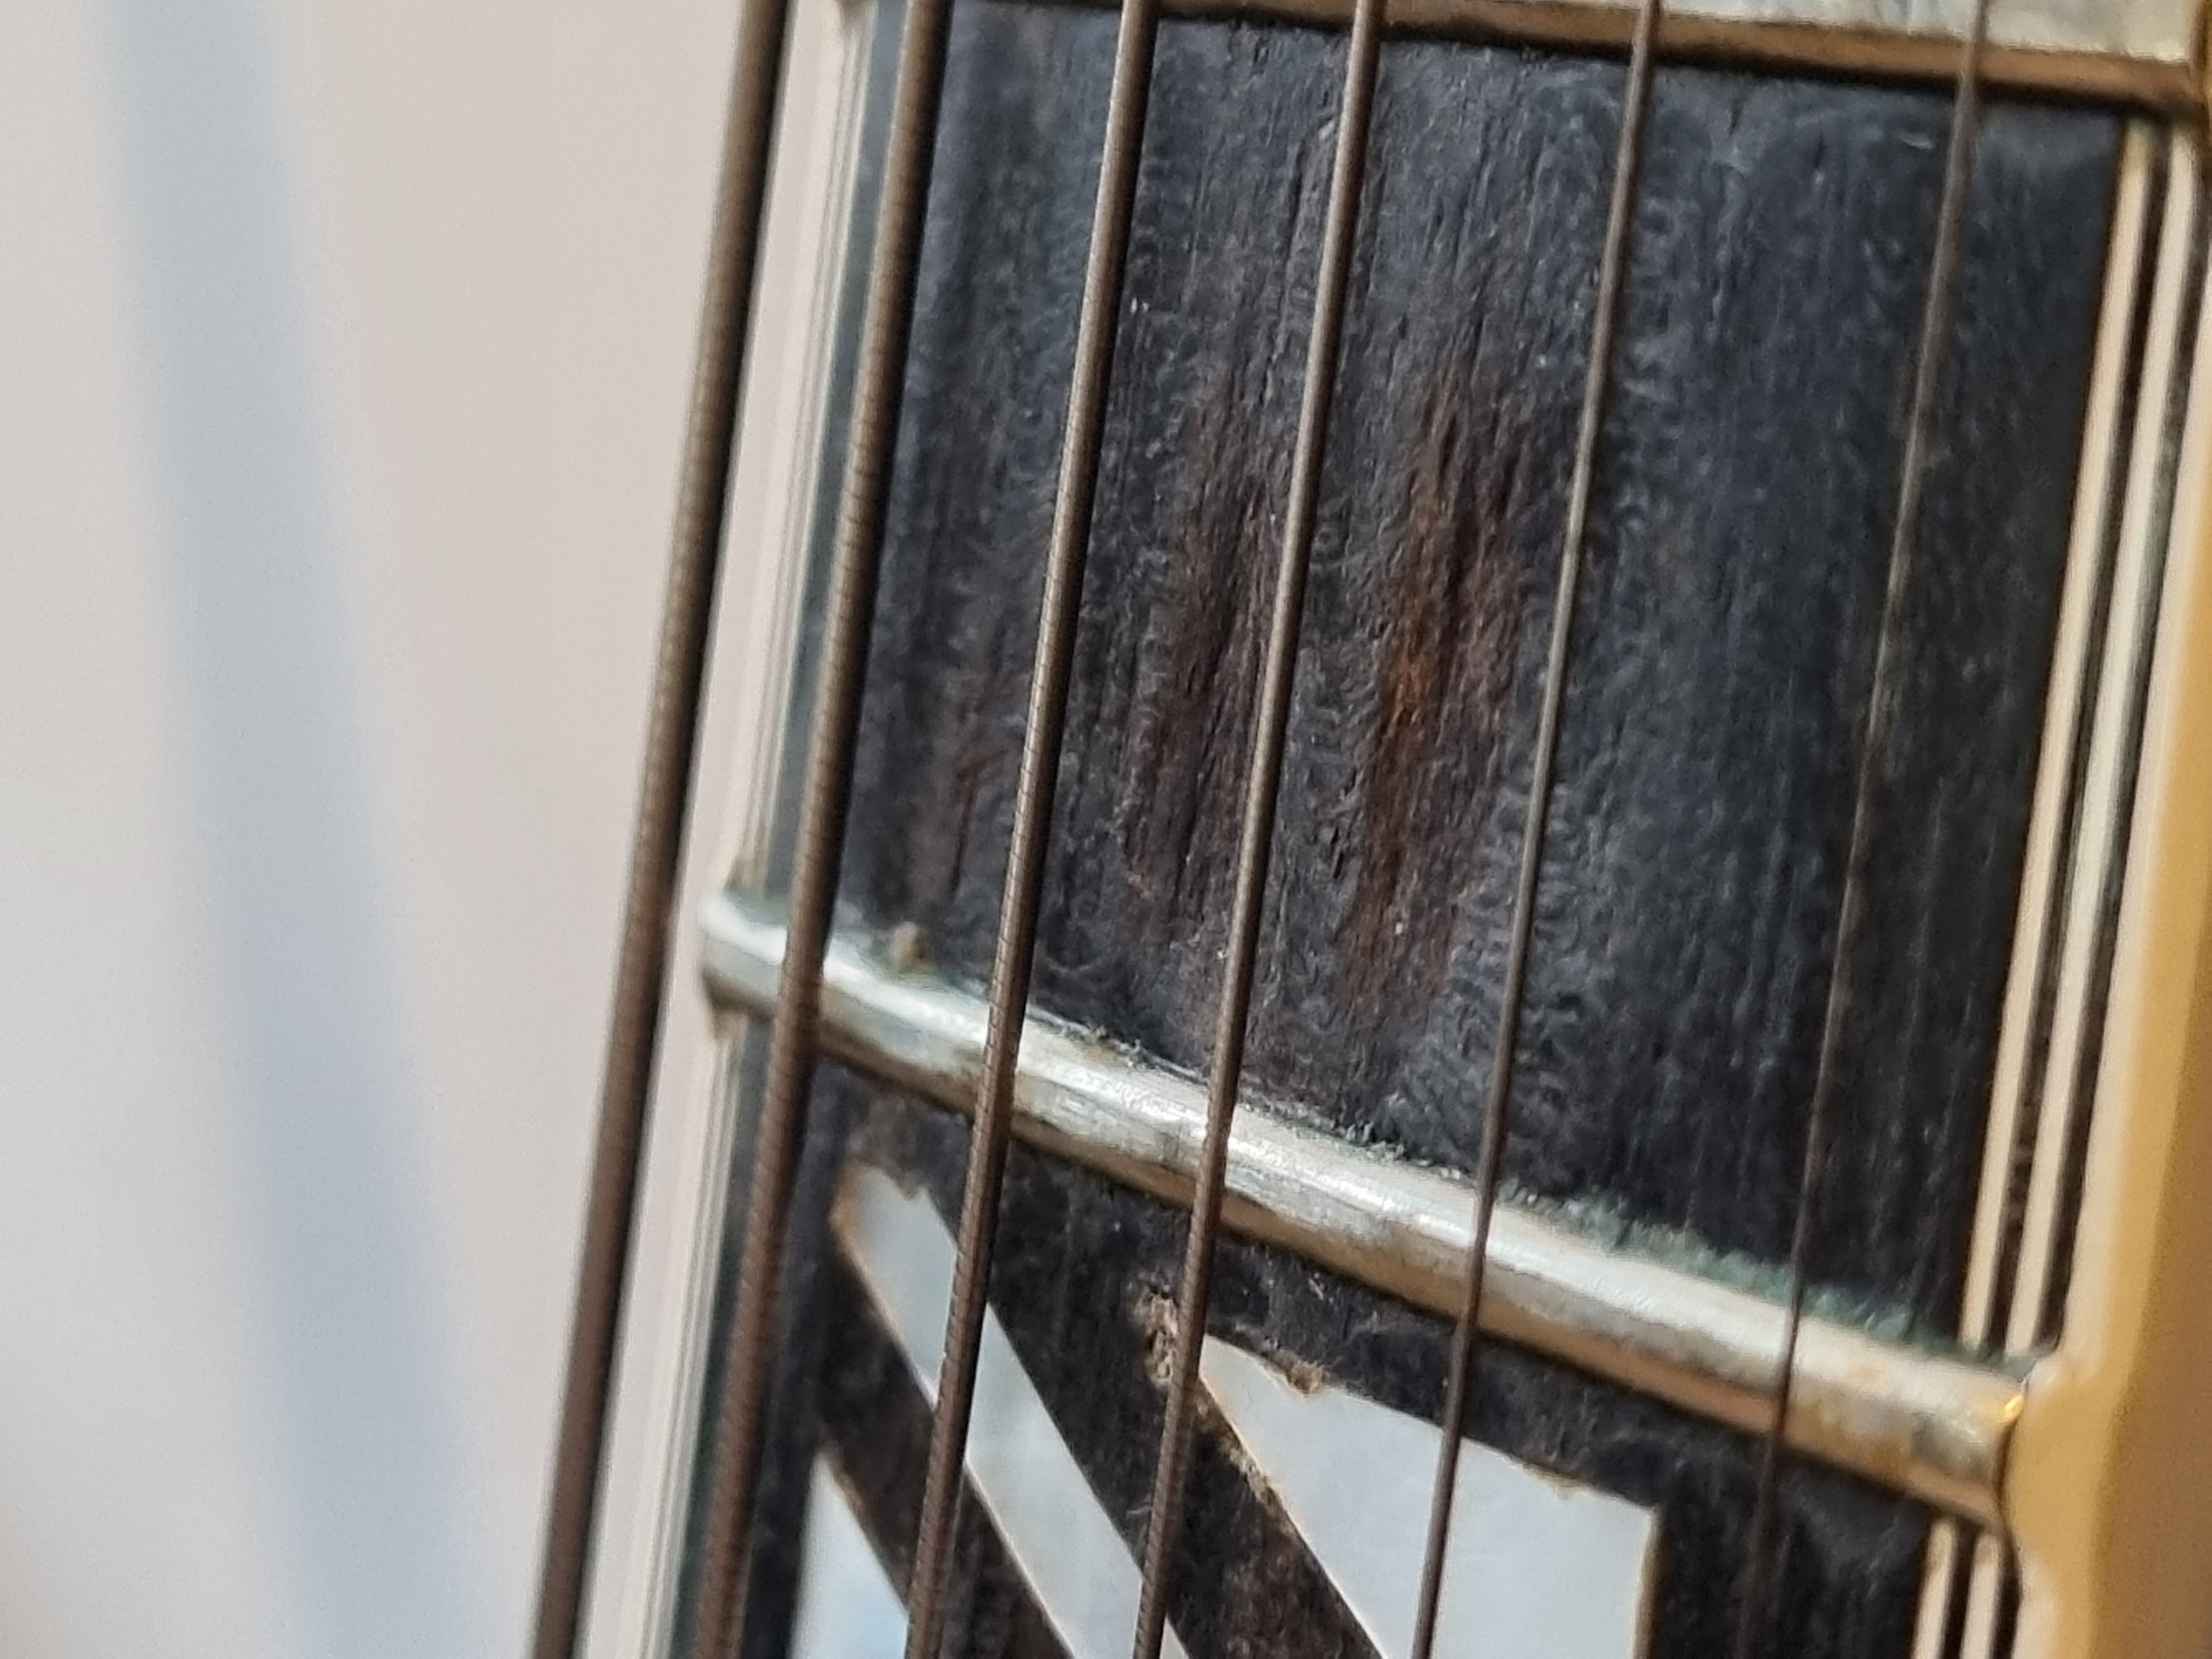 Fretboard pitting - What's the deal?-20210913_180034-jpg